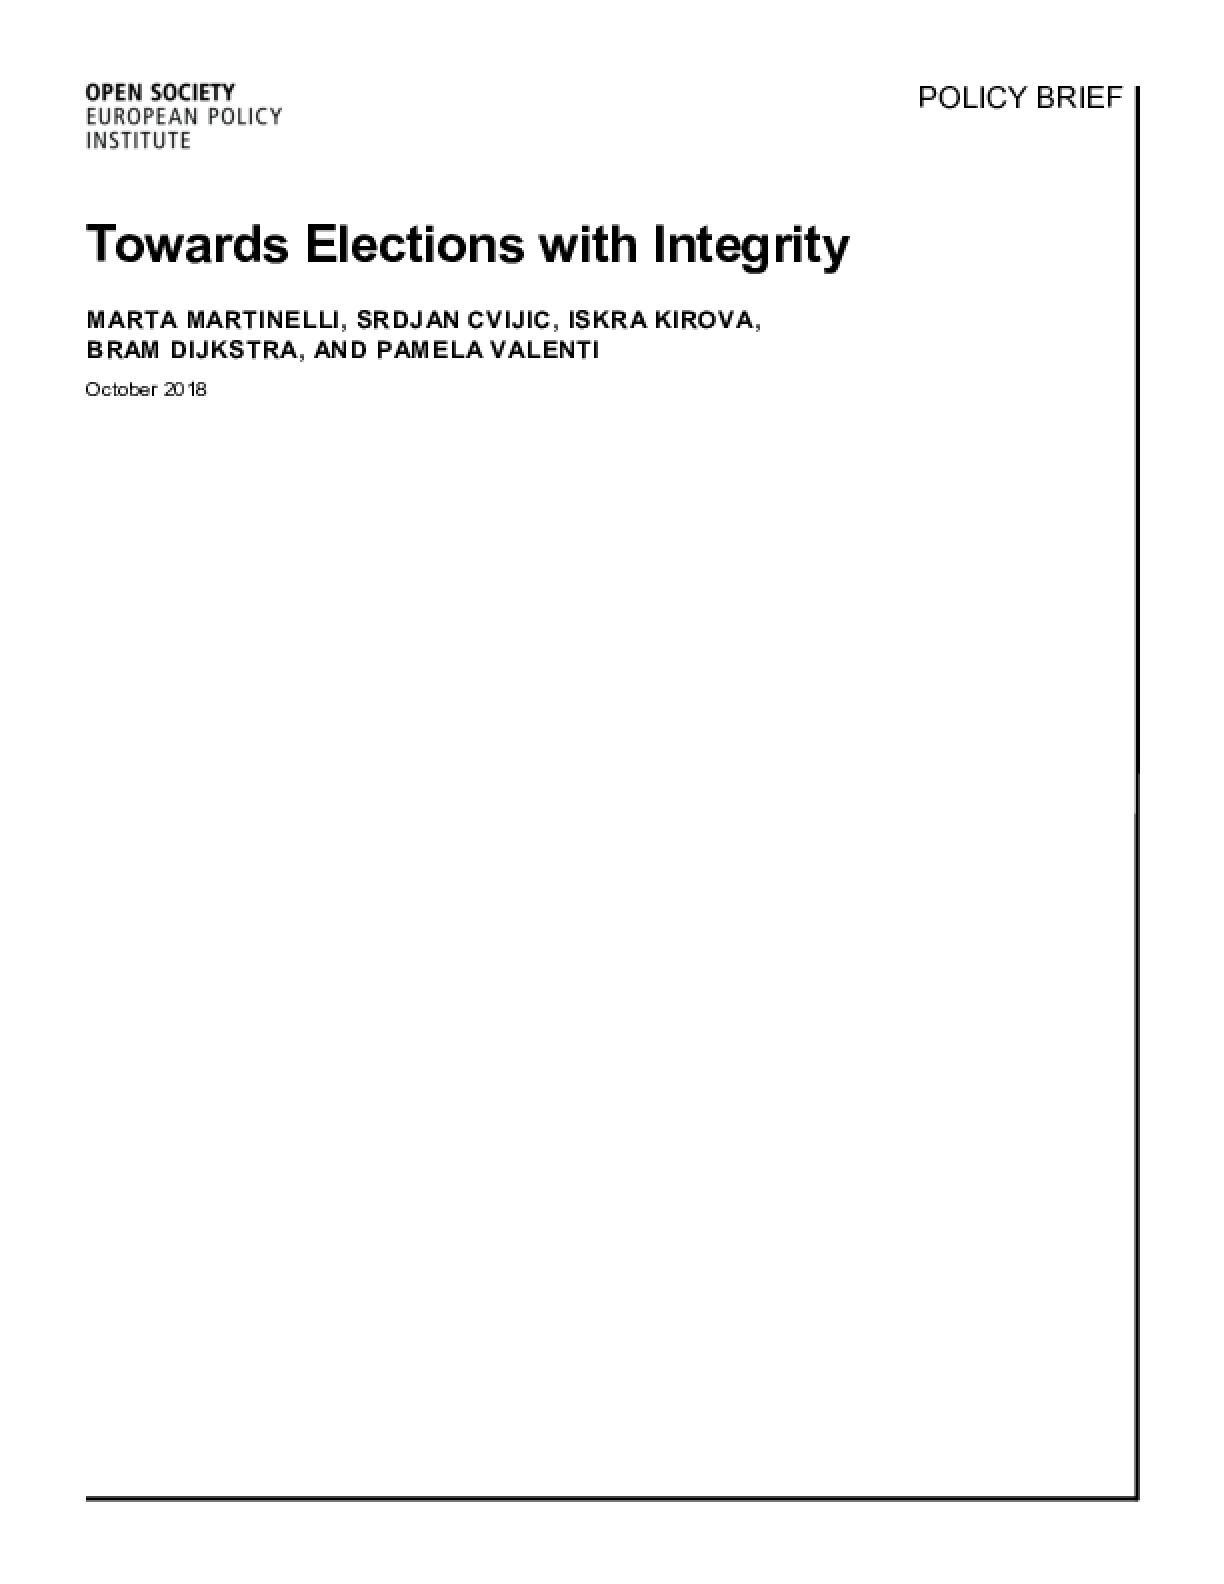 Towards Elections with Integrity